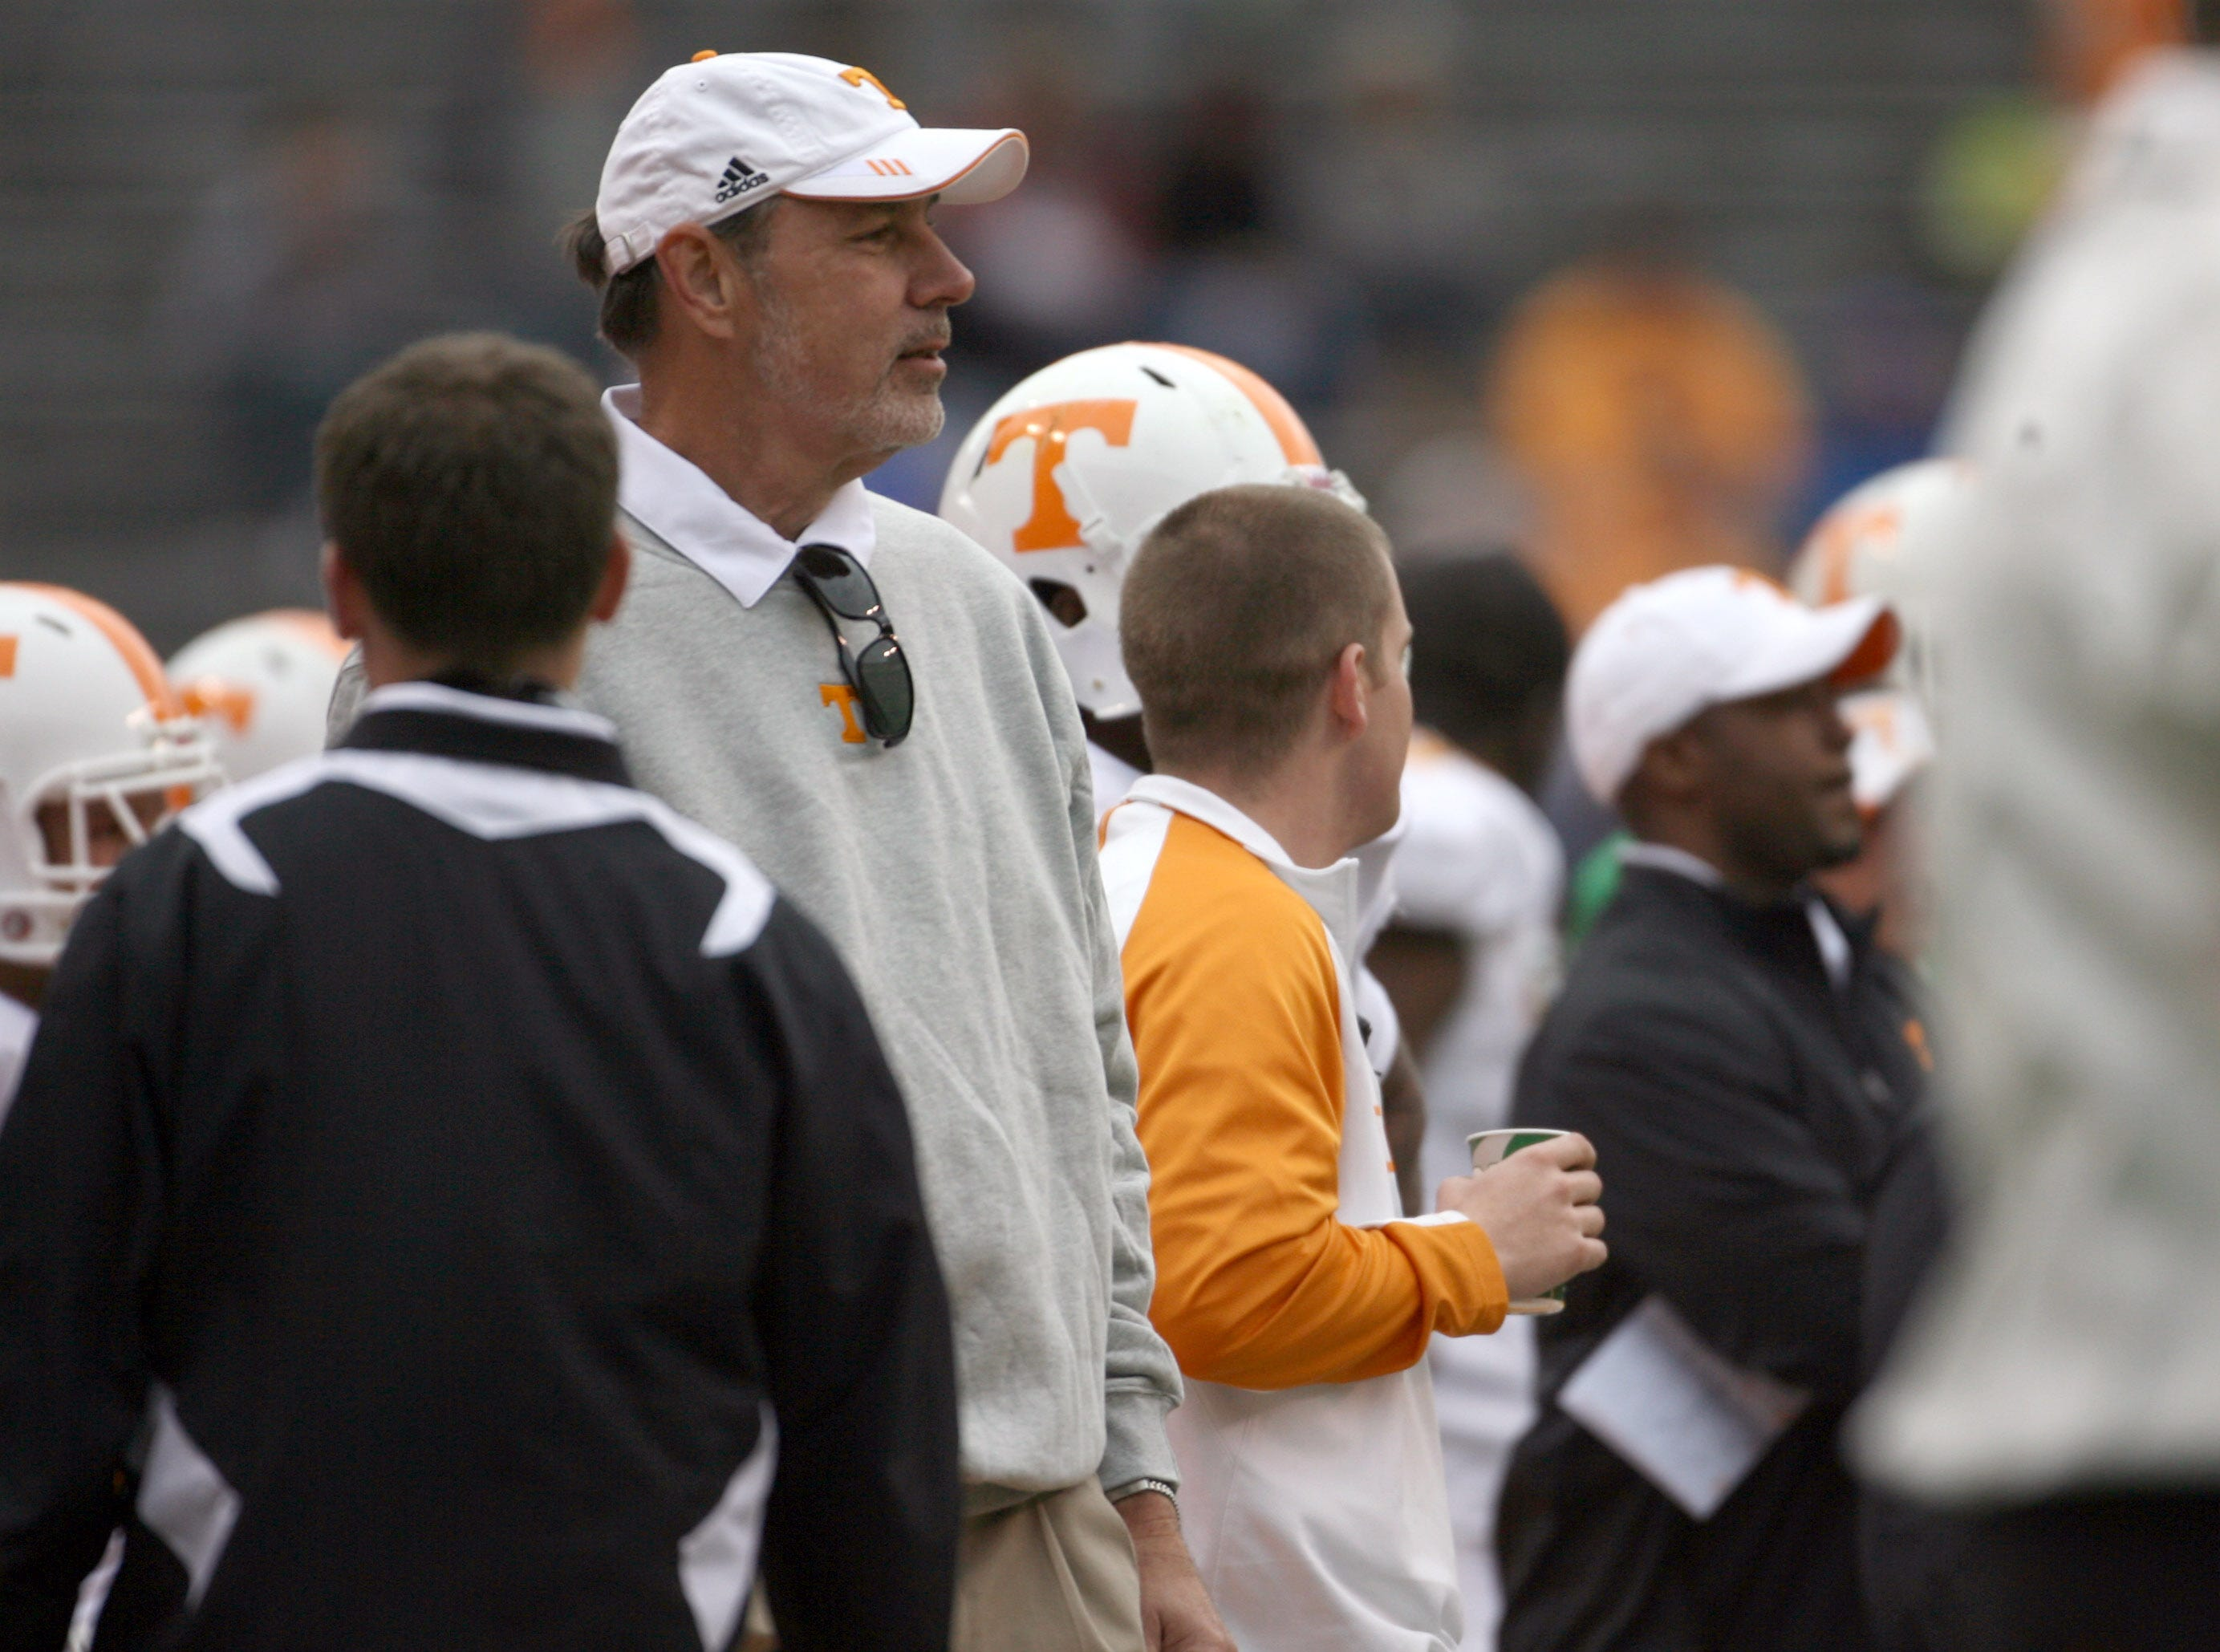 News Sentinel sports writer Mike Strange looks on while serving as the White team celebrity head coach during the Orange and White game at Neyland Stadium Saturday, April 16, 2011.  White won the game